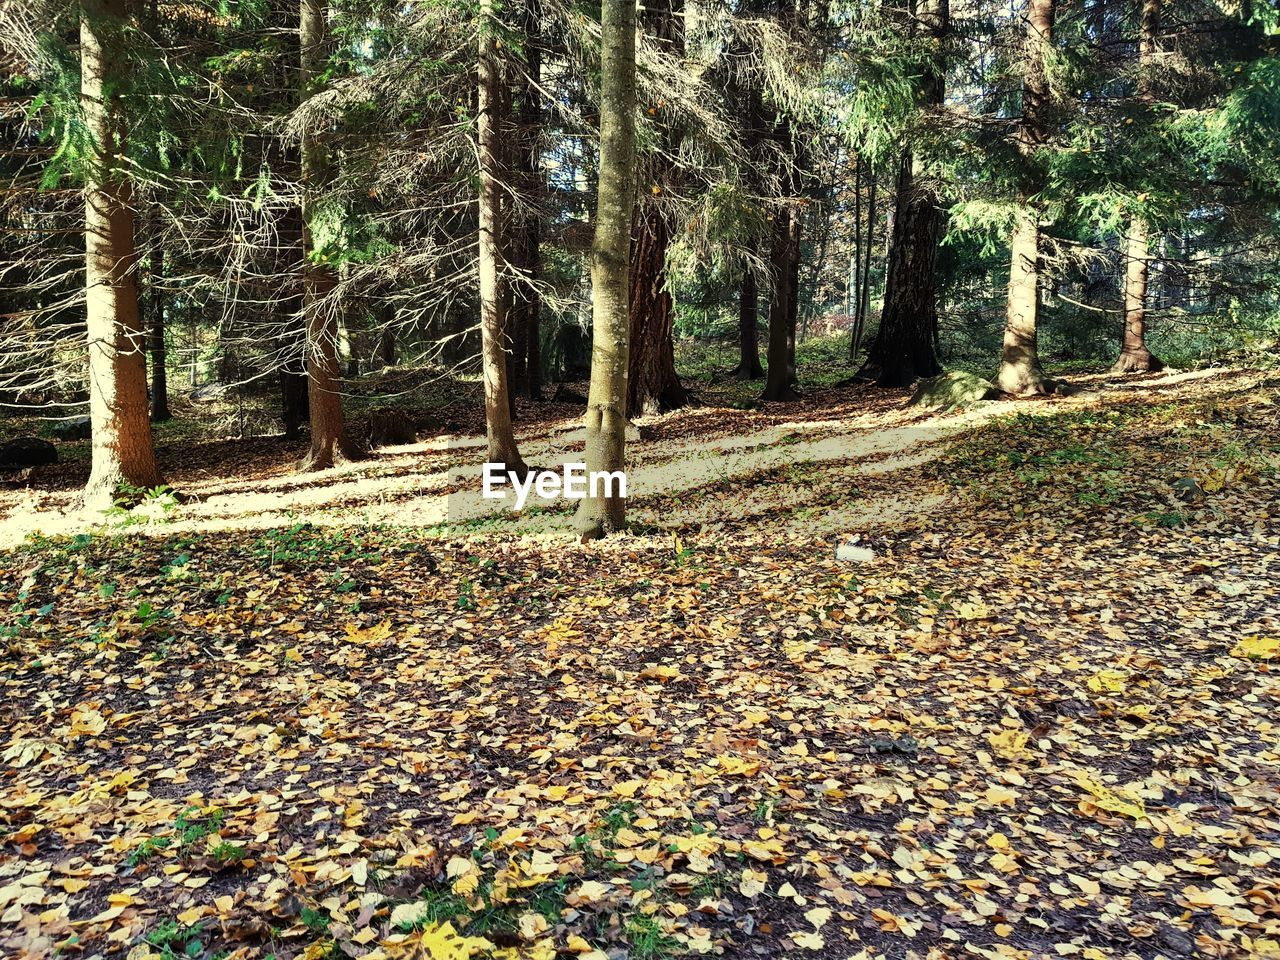 tree, plant, land, forest, nature, tranquility, tree trunk, trunk, growth, beauty in nature, day, tranquil scene, plant part, leaf, no people, change, woodland, non-urban scene, falling, autumn, outdoors, leaves